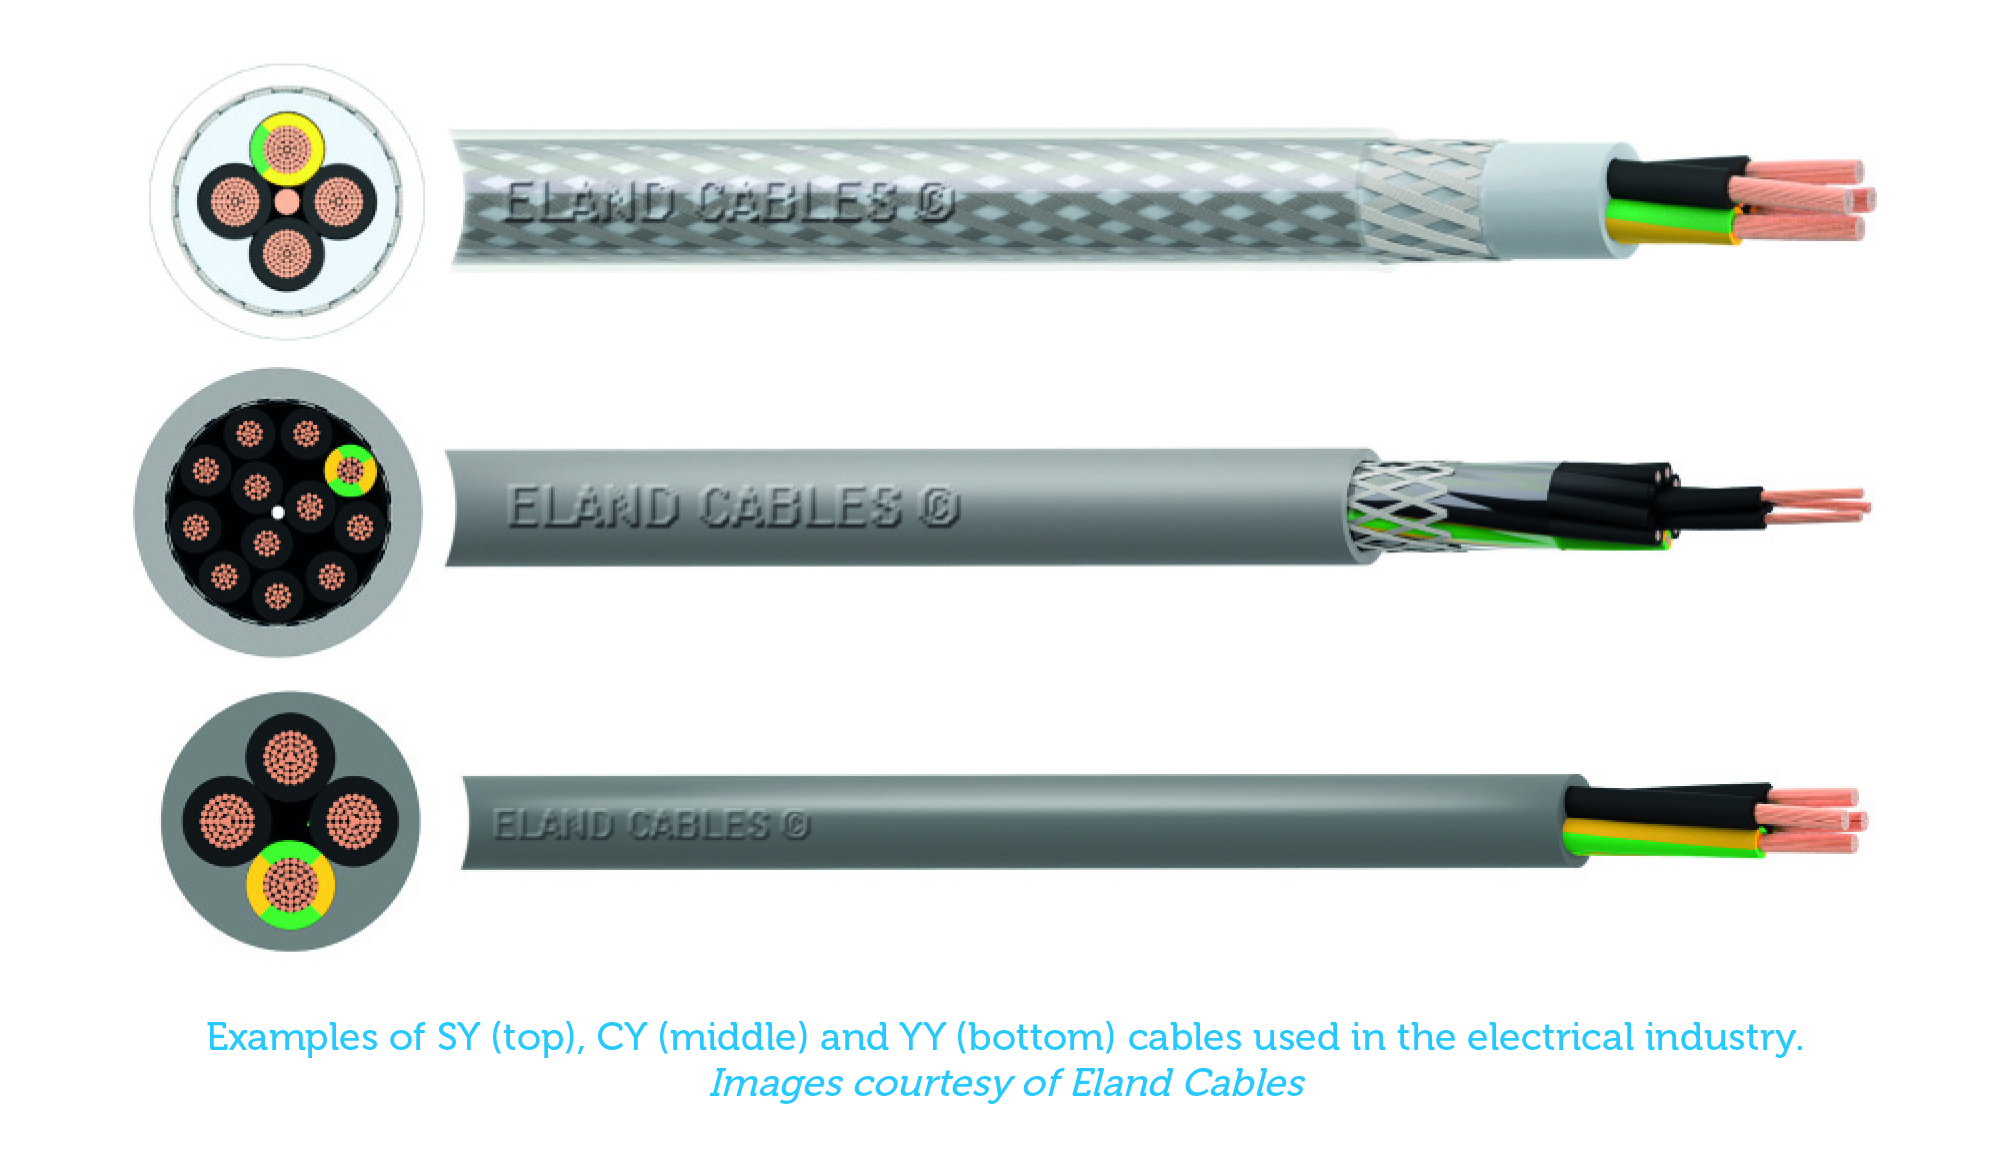 Eland Cable